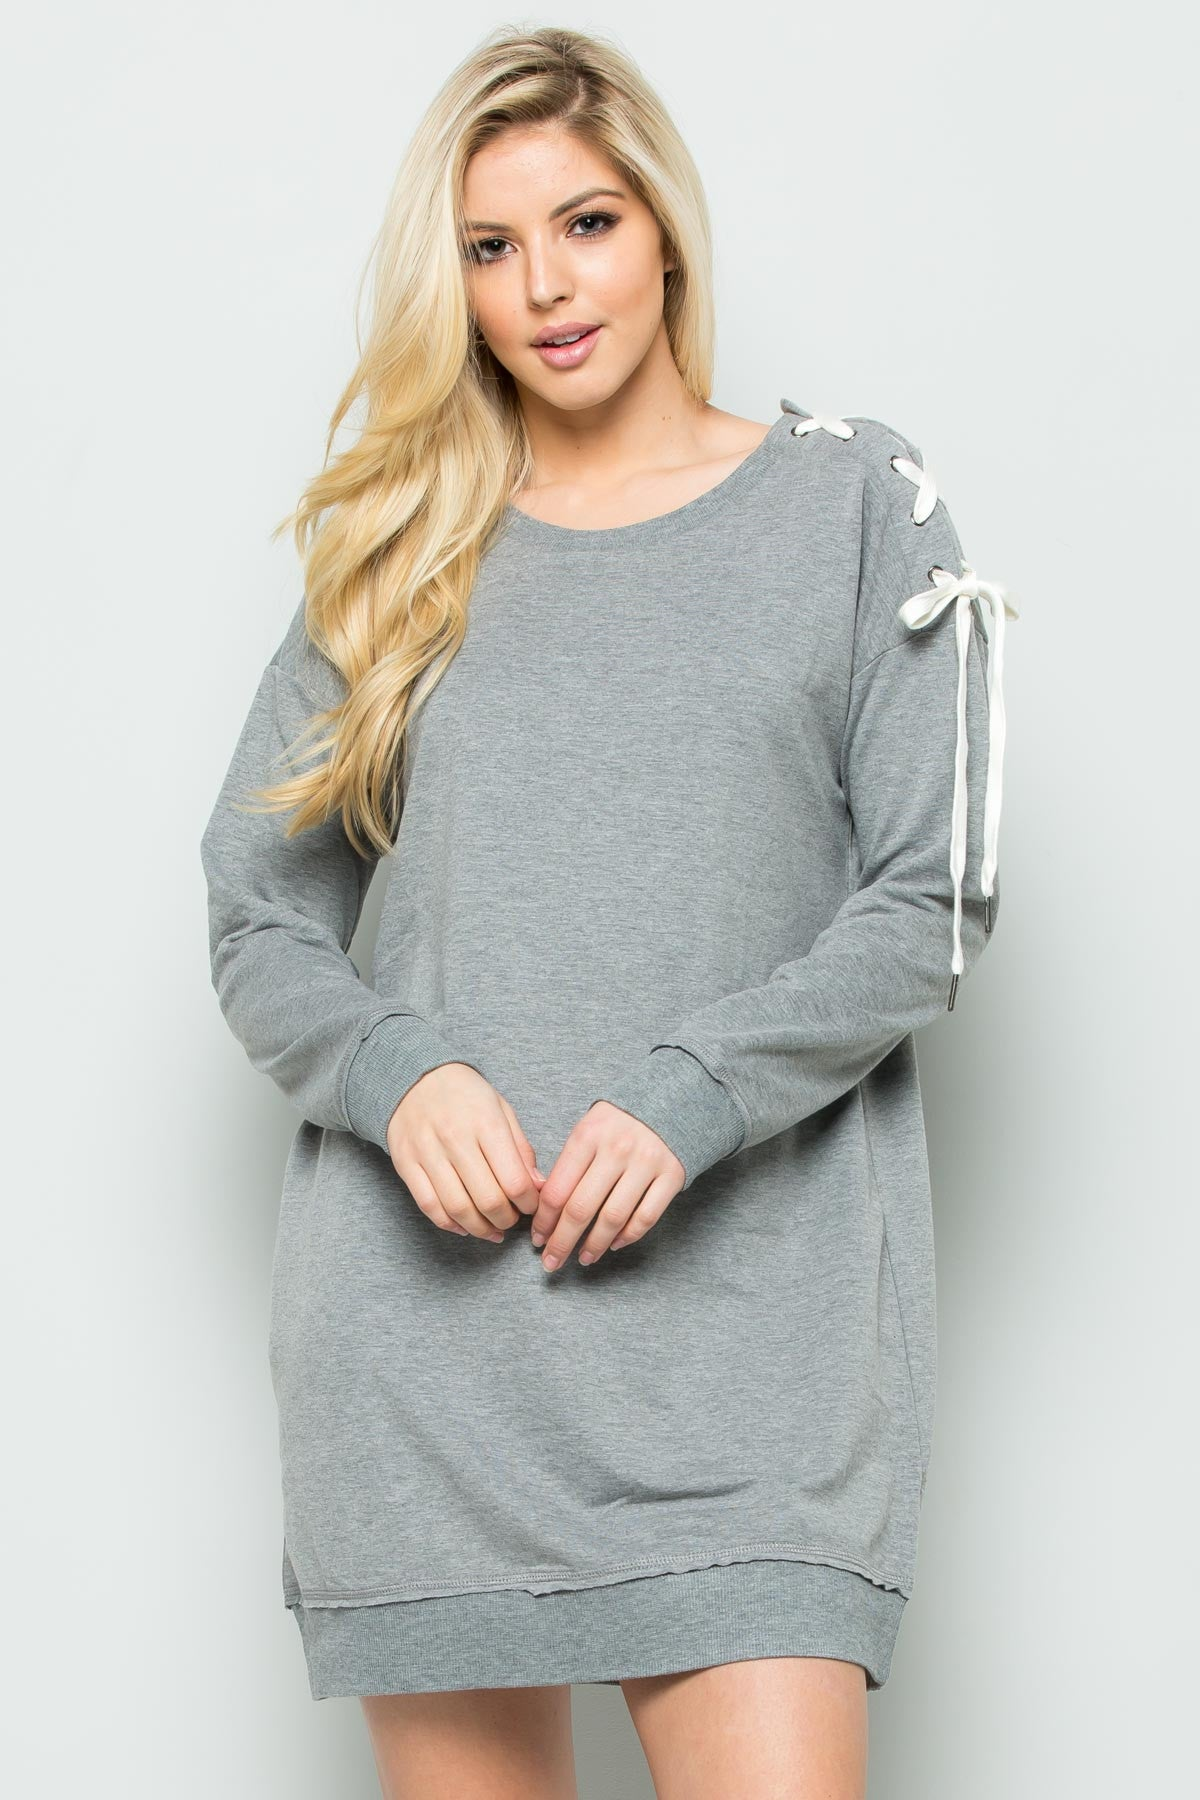 Shoulder Lace Up Sweater Dress in Heather Grey - Dresses - My Yuccie - 7